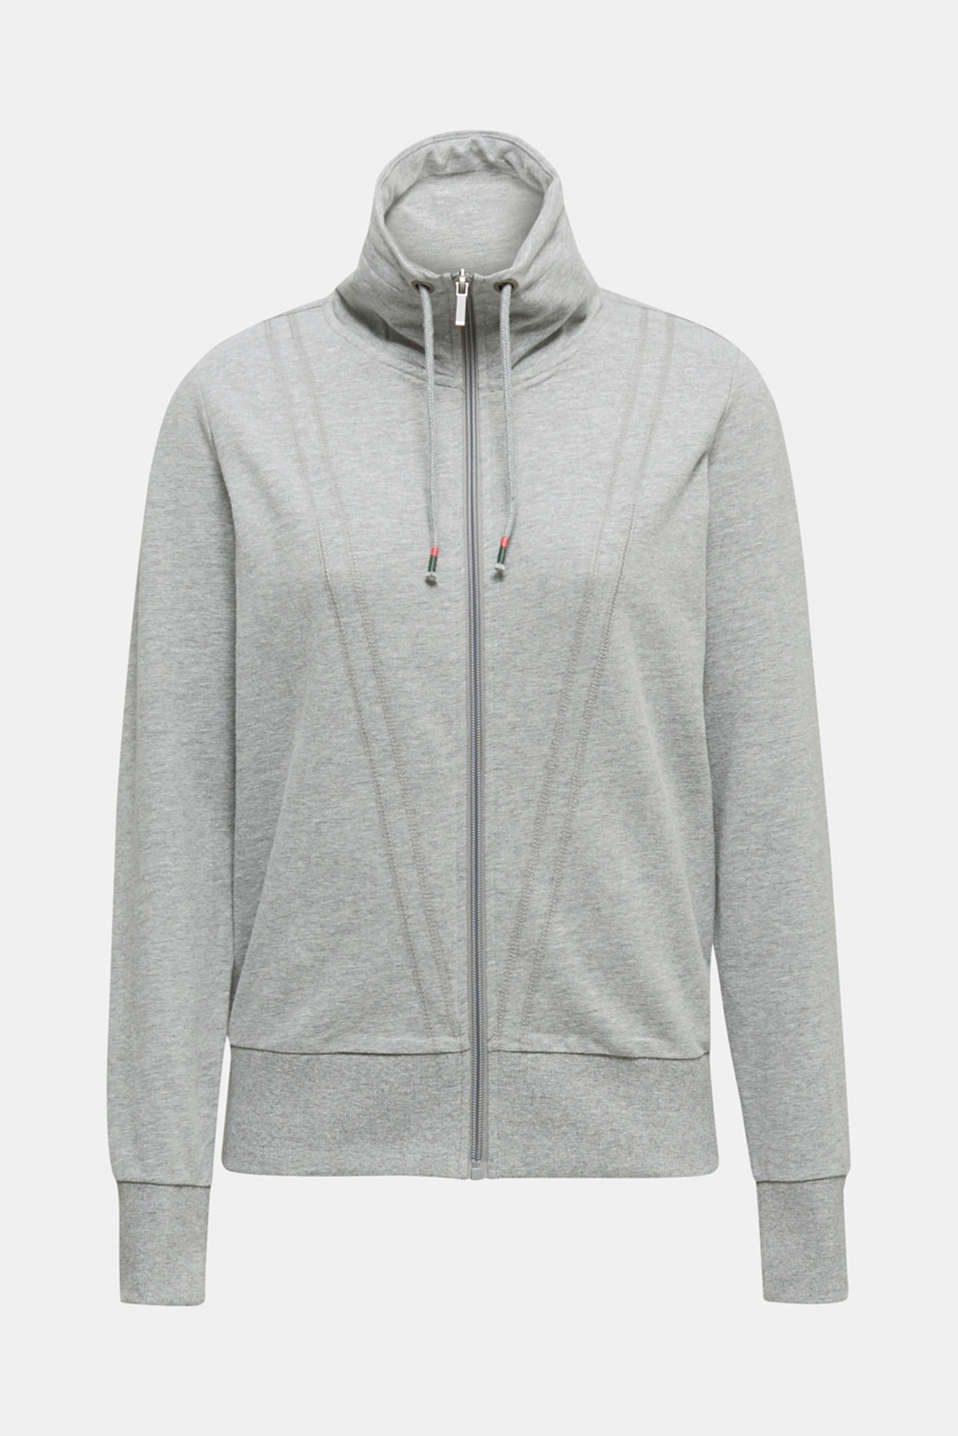 Melange sweatshirt jacket with a drawstring collar, MEDIUM GREY 2, detail image number 6